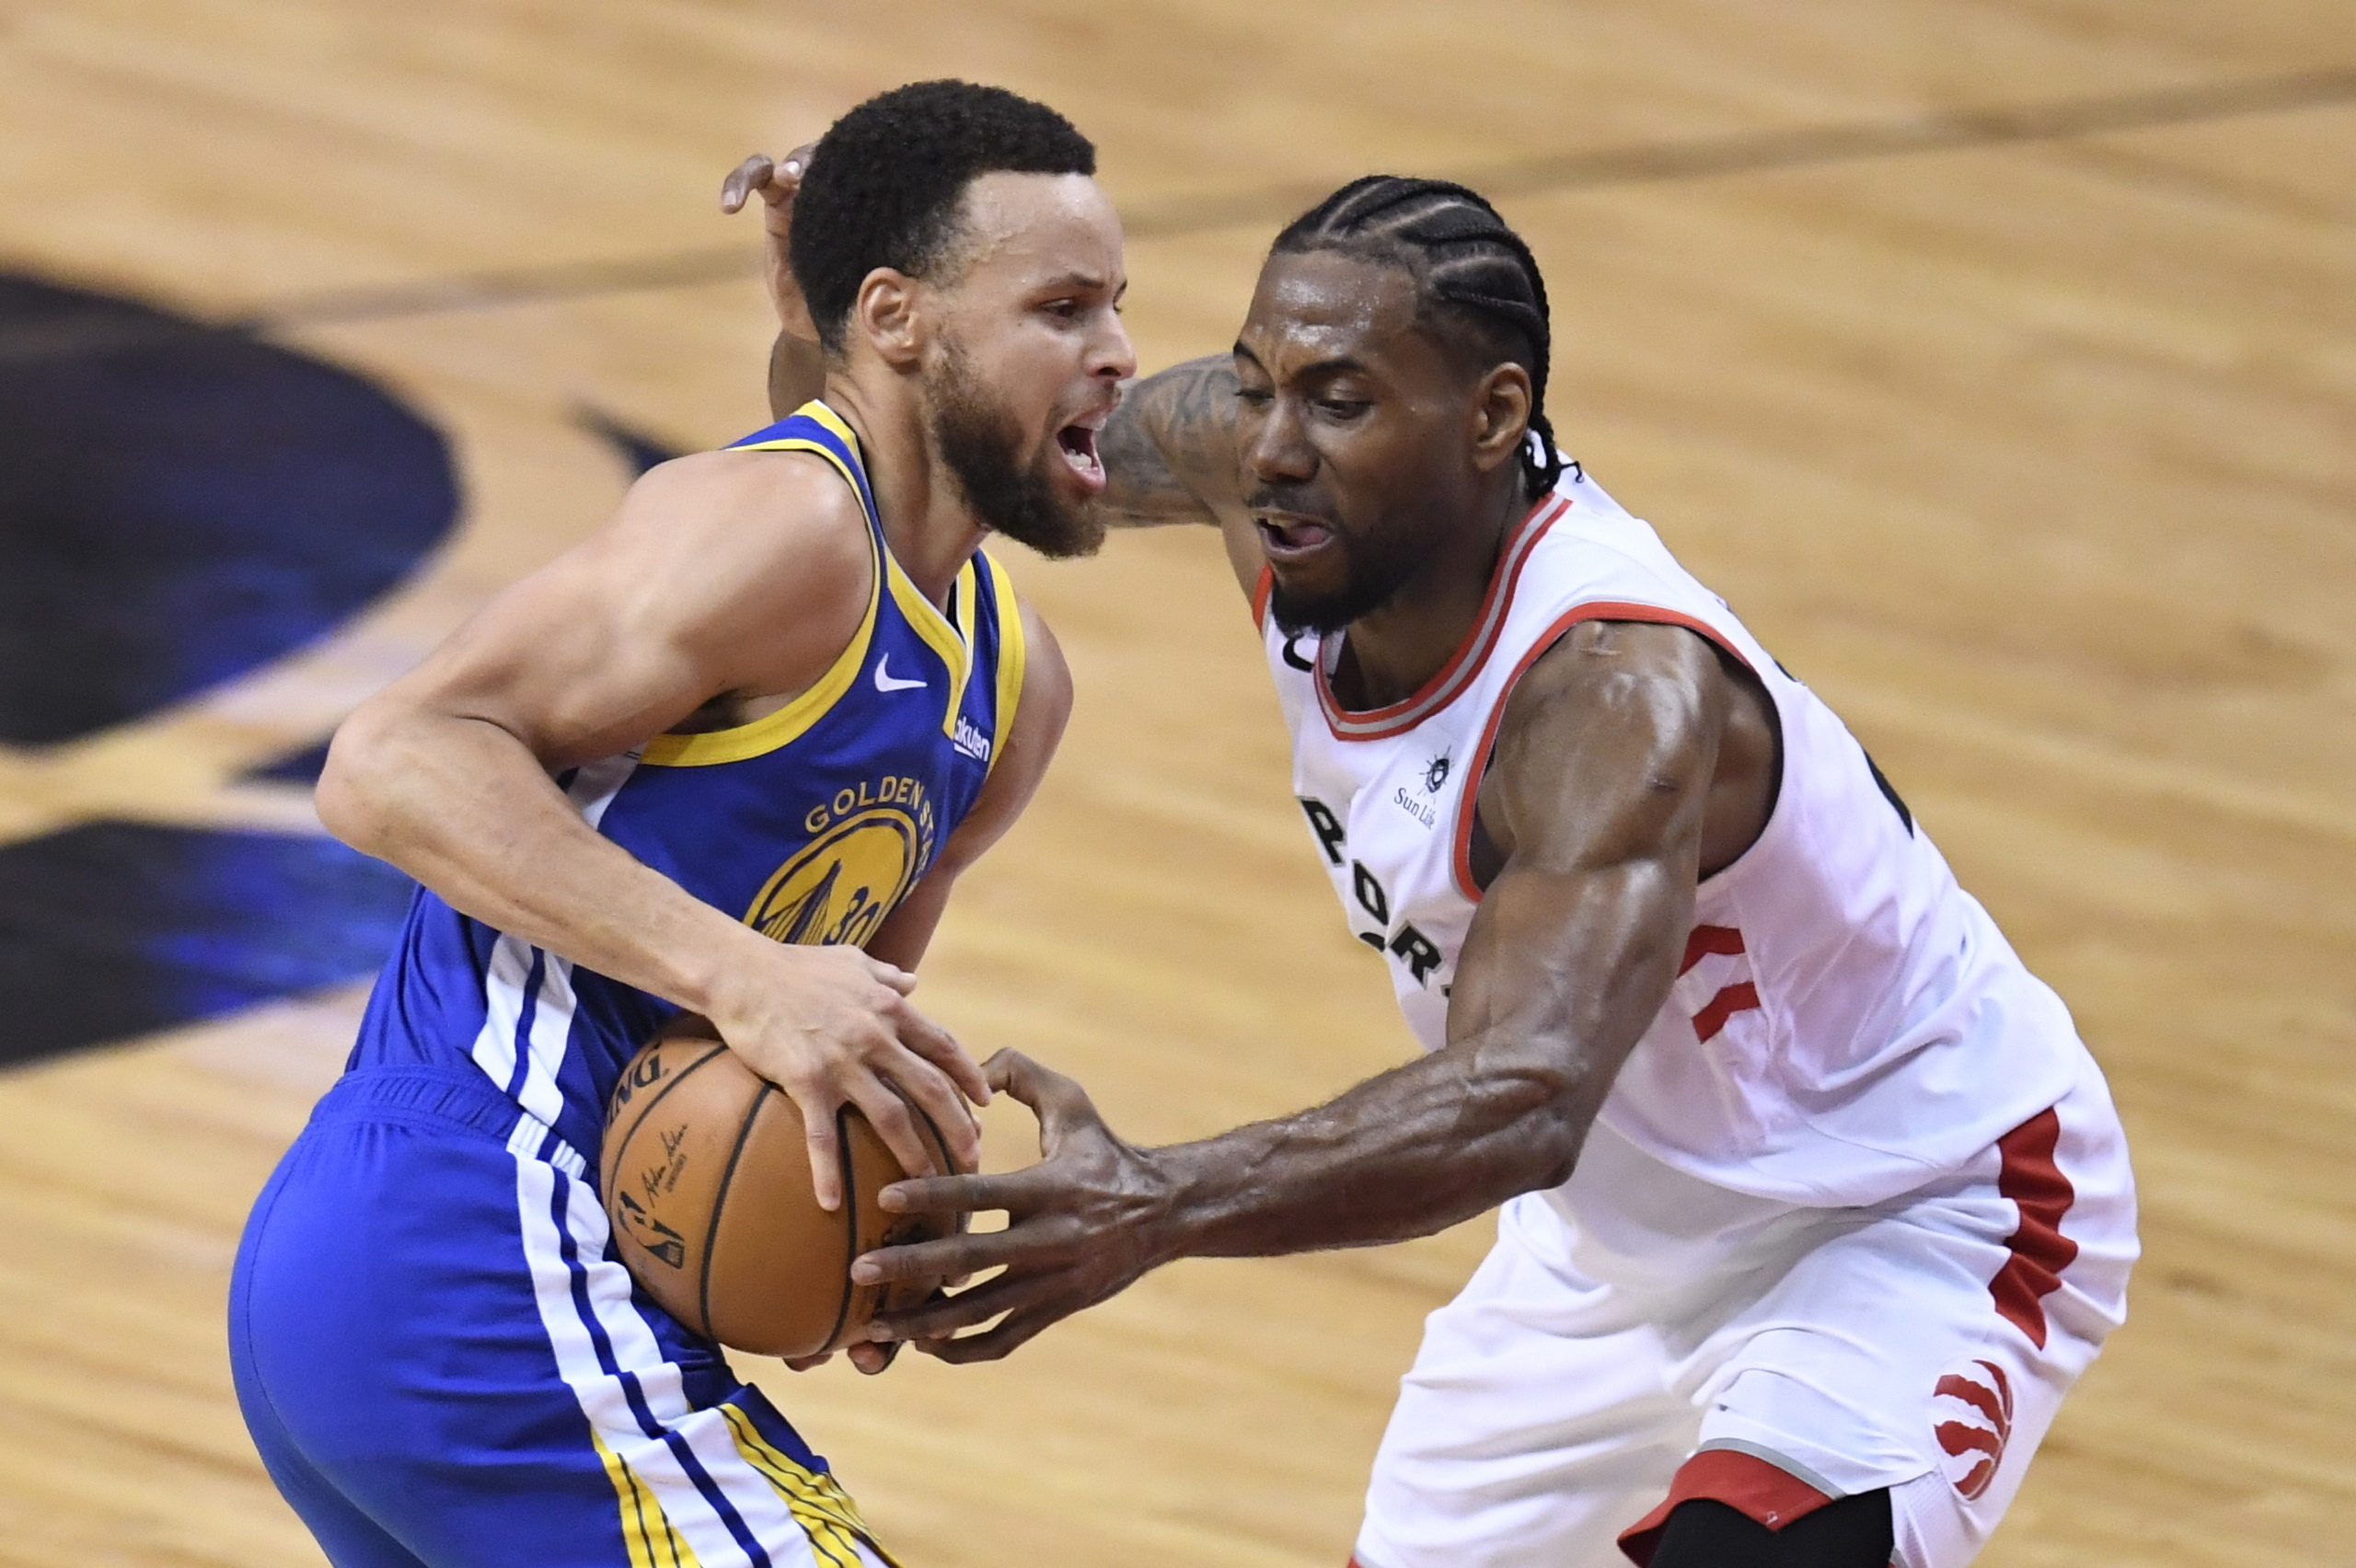 db2bc4bd16e Home 1gridSPORTS Warriors hang on to stay alive, win Game 5 of NBA Finals.  Toronto Raptors ...